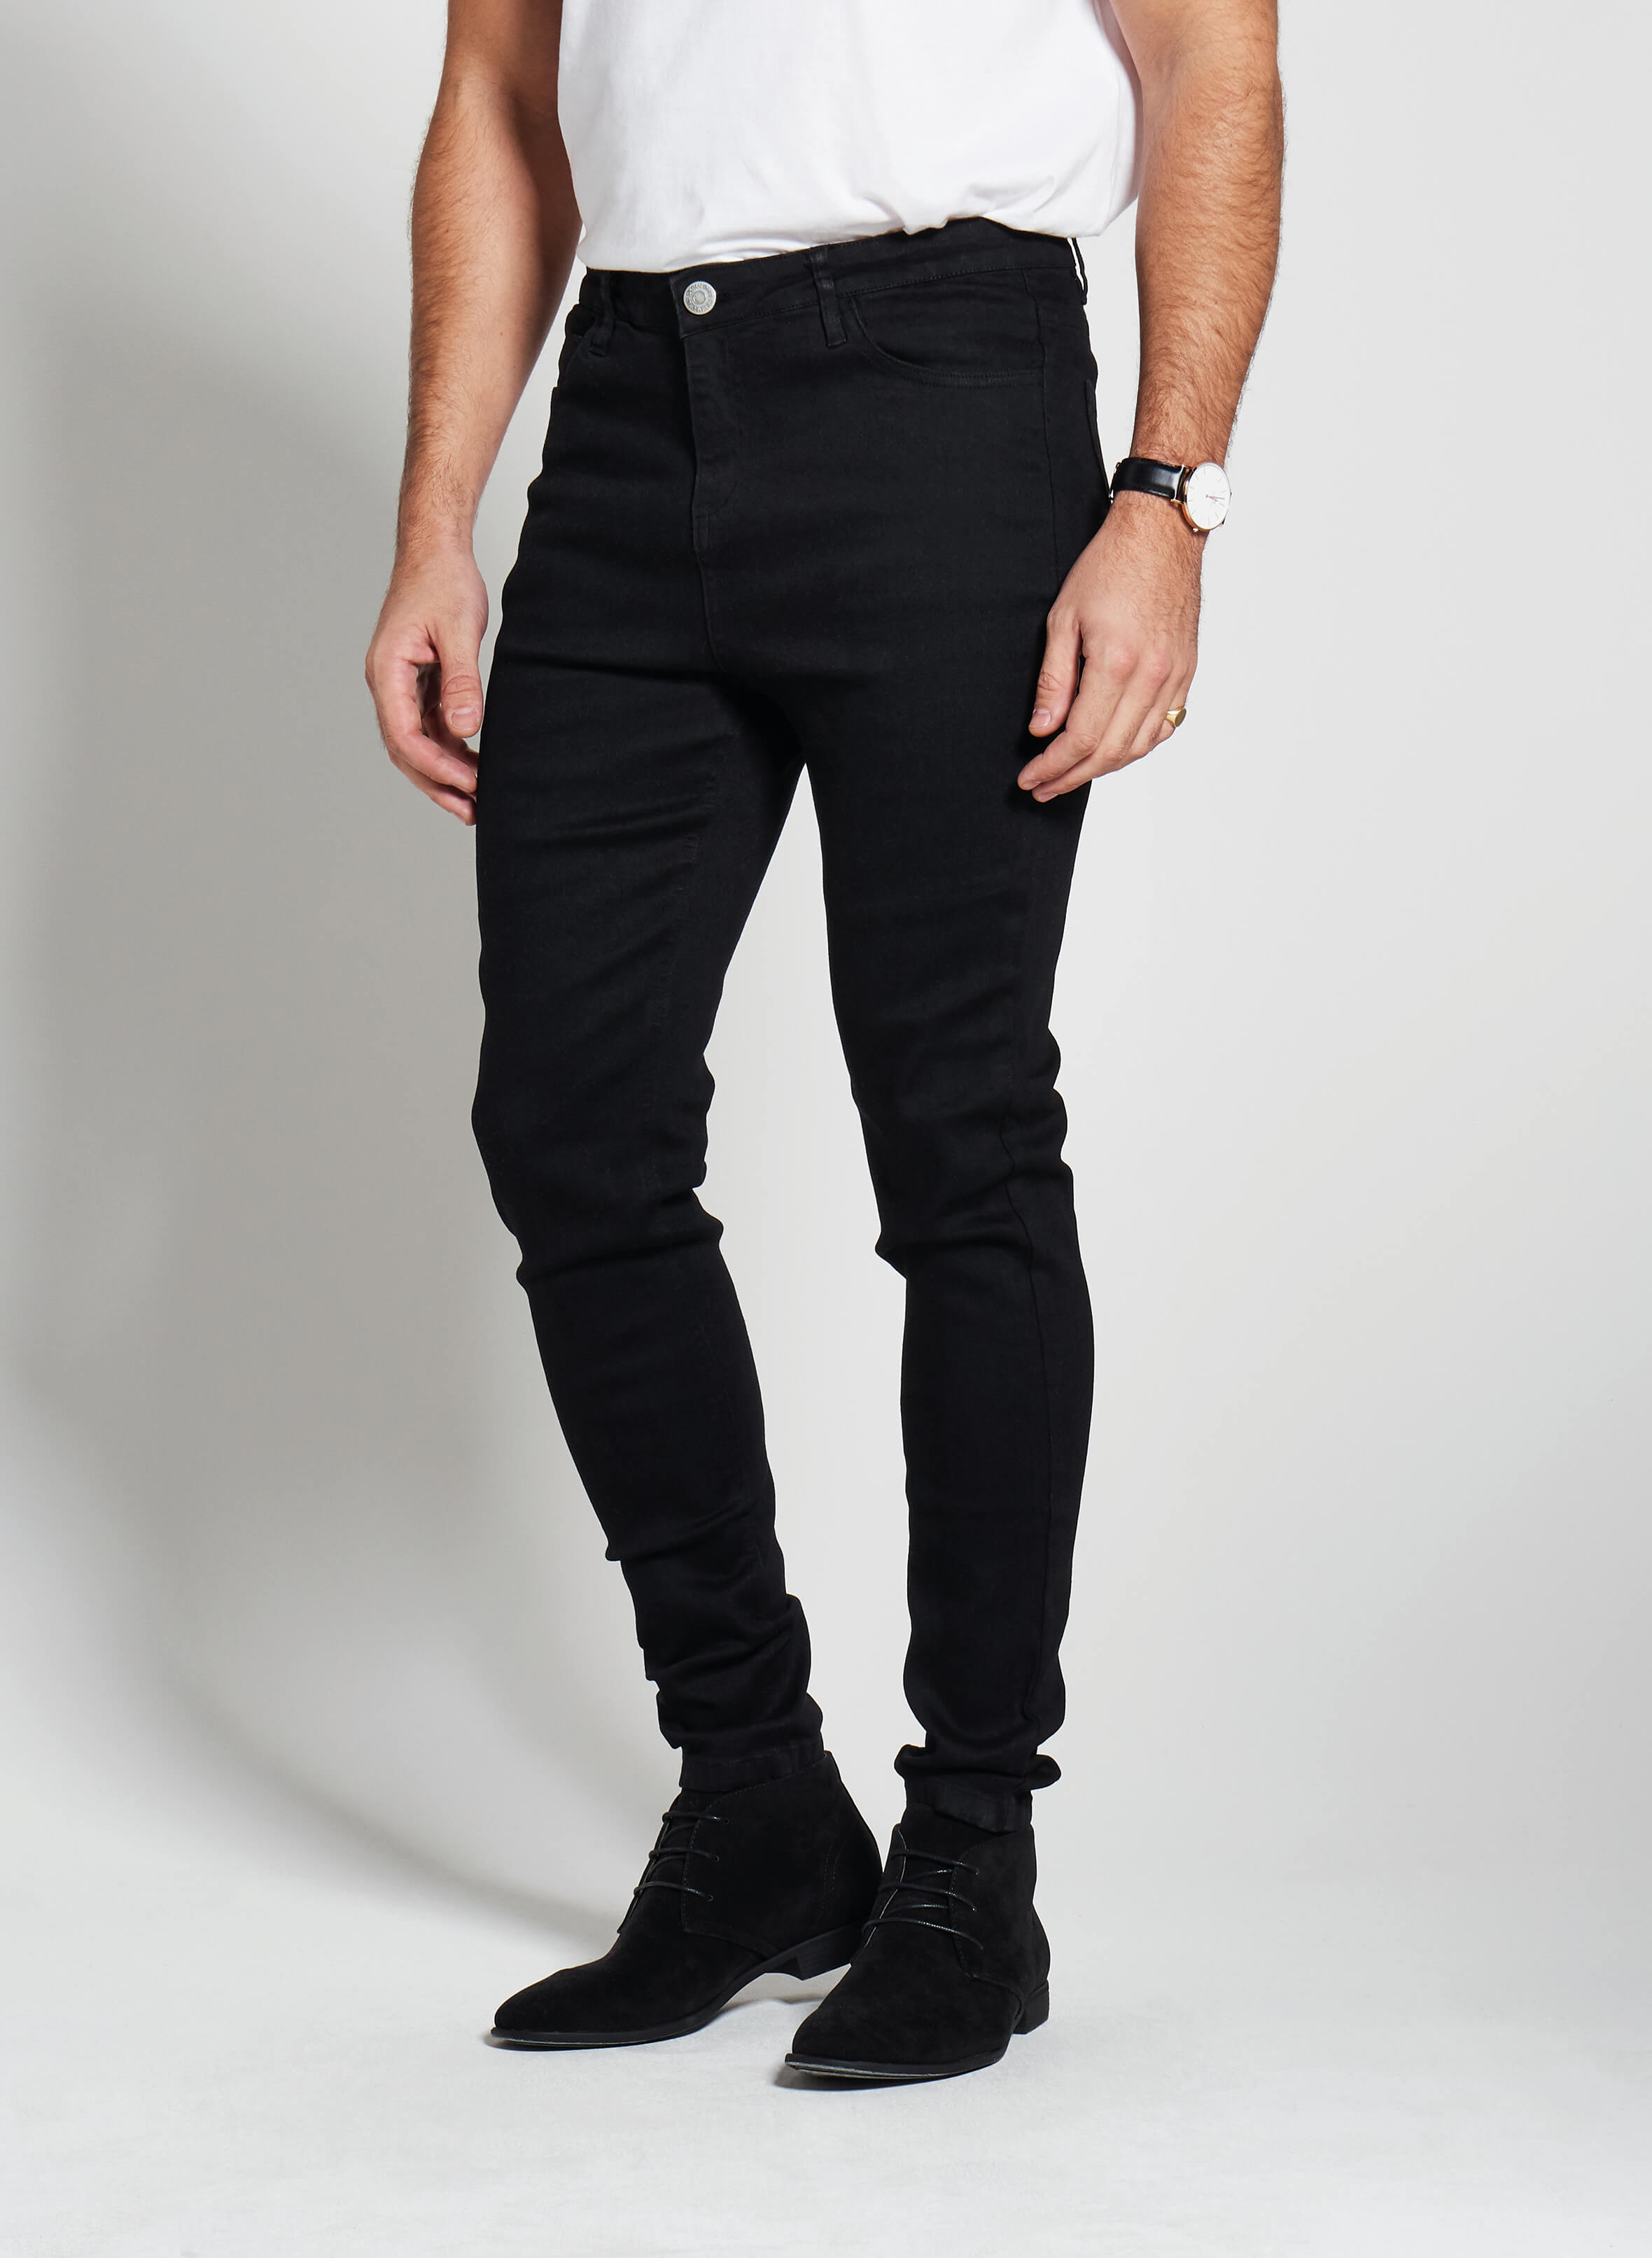 Denim Only® Slim Fit Jeans - Black - Slim Fit